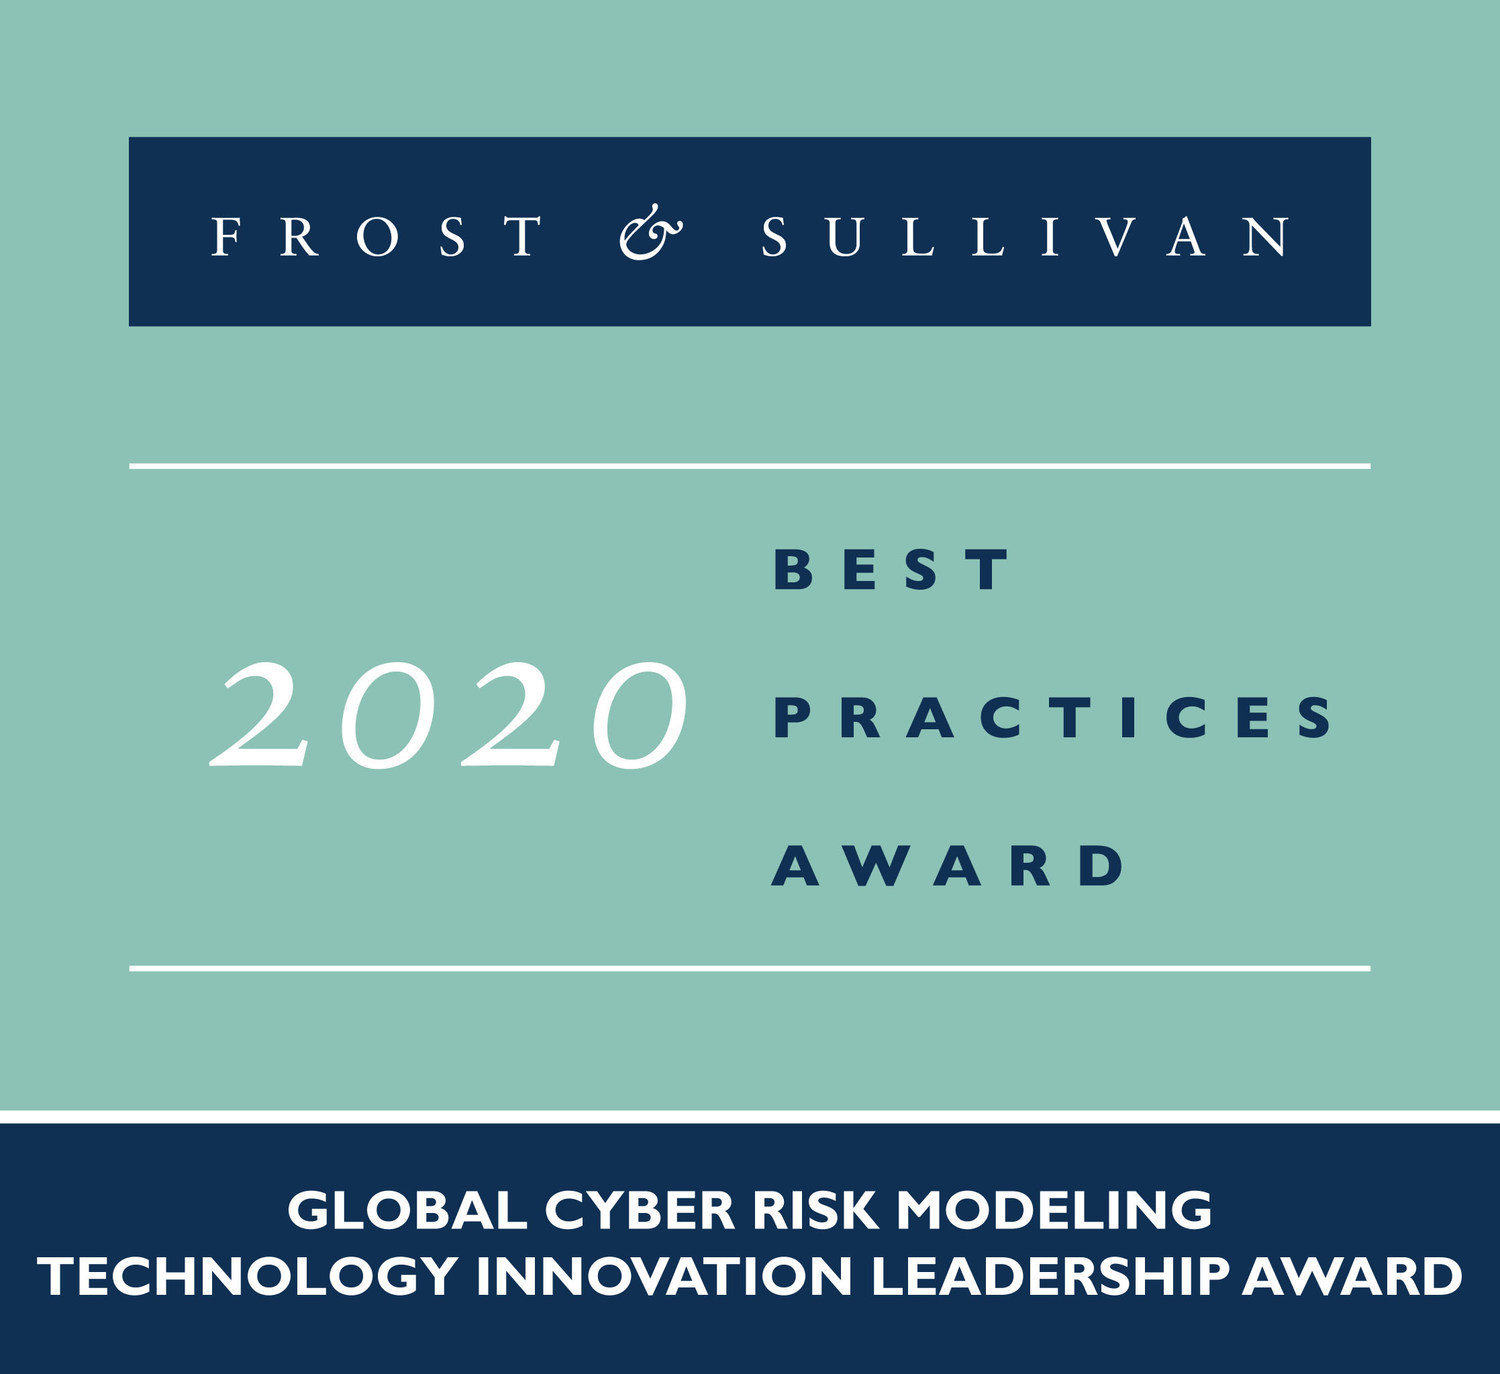 Cyberwrite Awarded Most Innovative Cyber Risk Modeling Technology Firm by Frost & Sullivan.